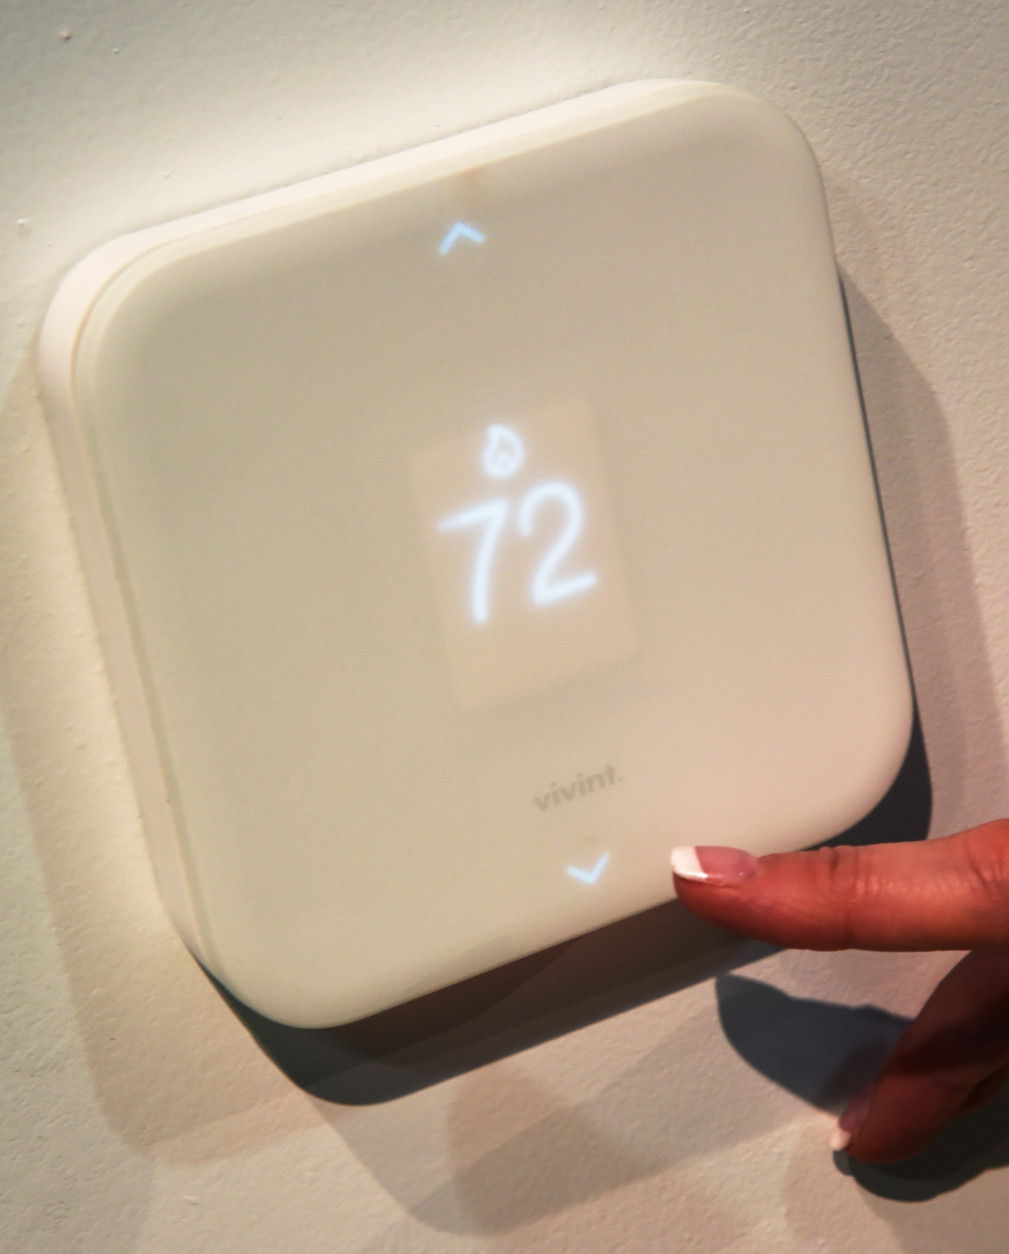 LAS VEGAS, NV - JANUARY 07:  The Vivint Element Thermostat is displayed at CES 2016 at the Sands Expo and Convention Center on January 7, 2016 in Las Vegas, Nevada. The Element, part of the Vivint Sky smart home system, senses if you're at home or away and if you're sleeping and adjusts the temperature according to your settings. IT can also be accessed from any mobile device. CES, the world's largest annual consumer technology trade show, runs through January 9 and features 3,600 exhibitors showing off their latest products and services to more than 150,000 attendees.  (Photo by Ethan Miller/Getty Images)